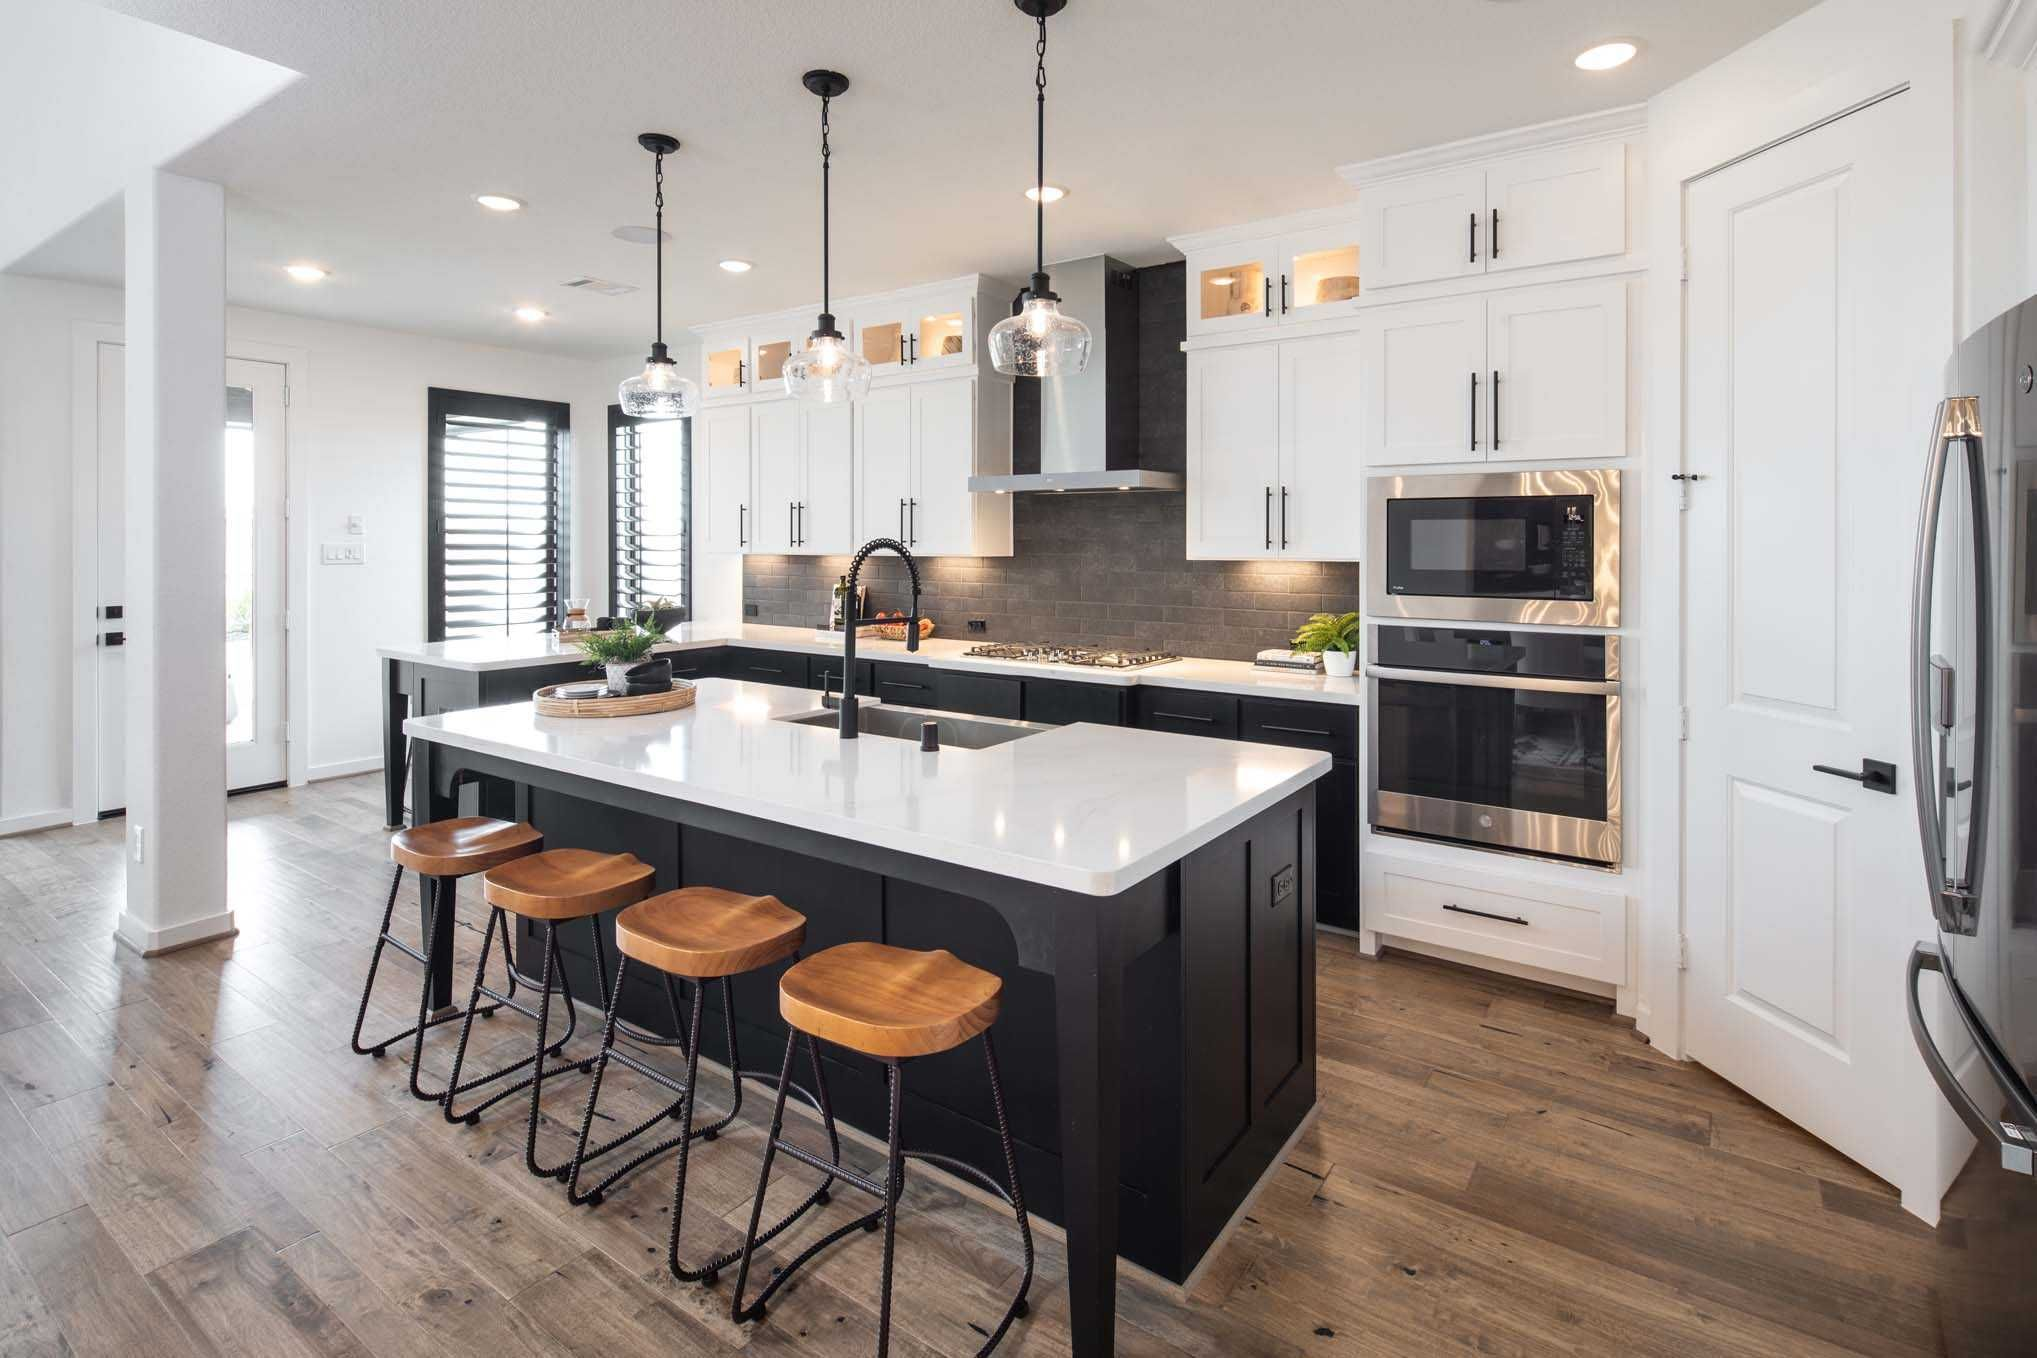 Kitchen In Highland Homes 559h Plan At 29102 Meadow Terrace Drive Fulshear Tx In The Cross Creek Ranch Community In 2020 New Homes Highland Homes Fulshear